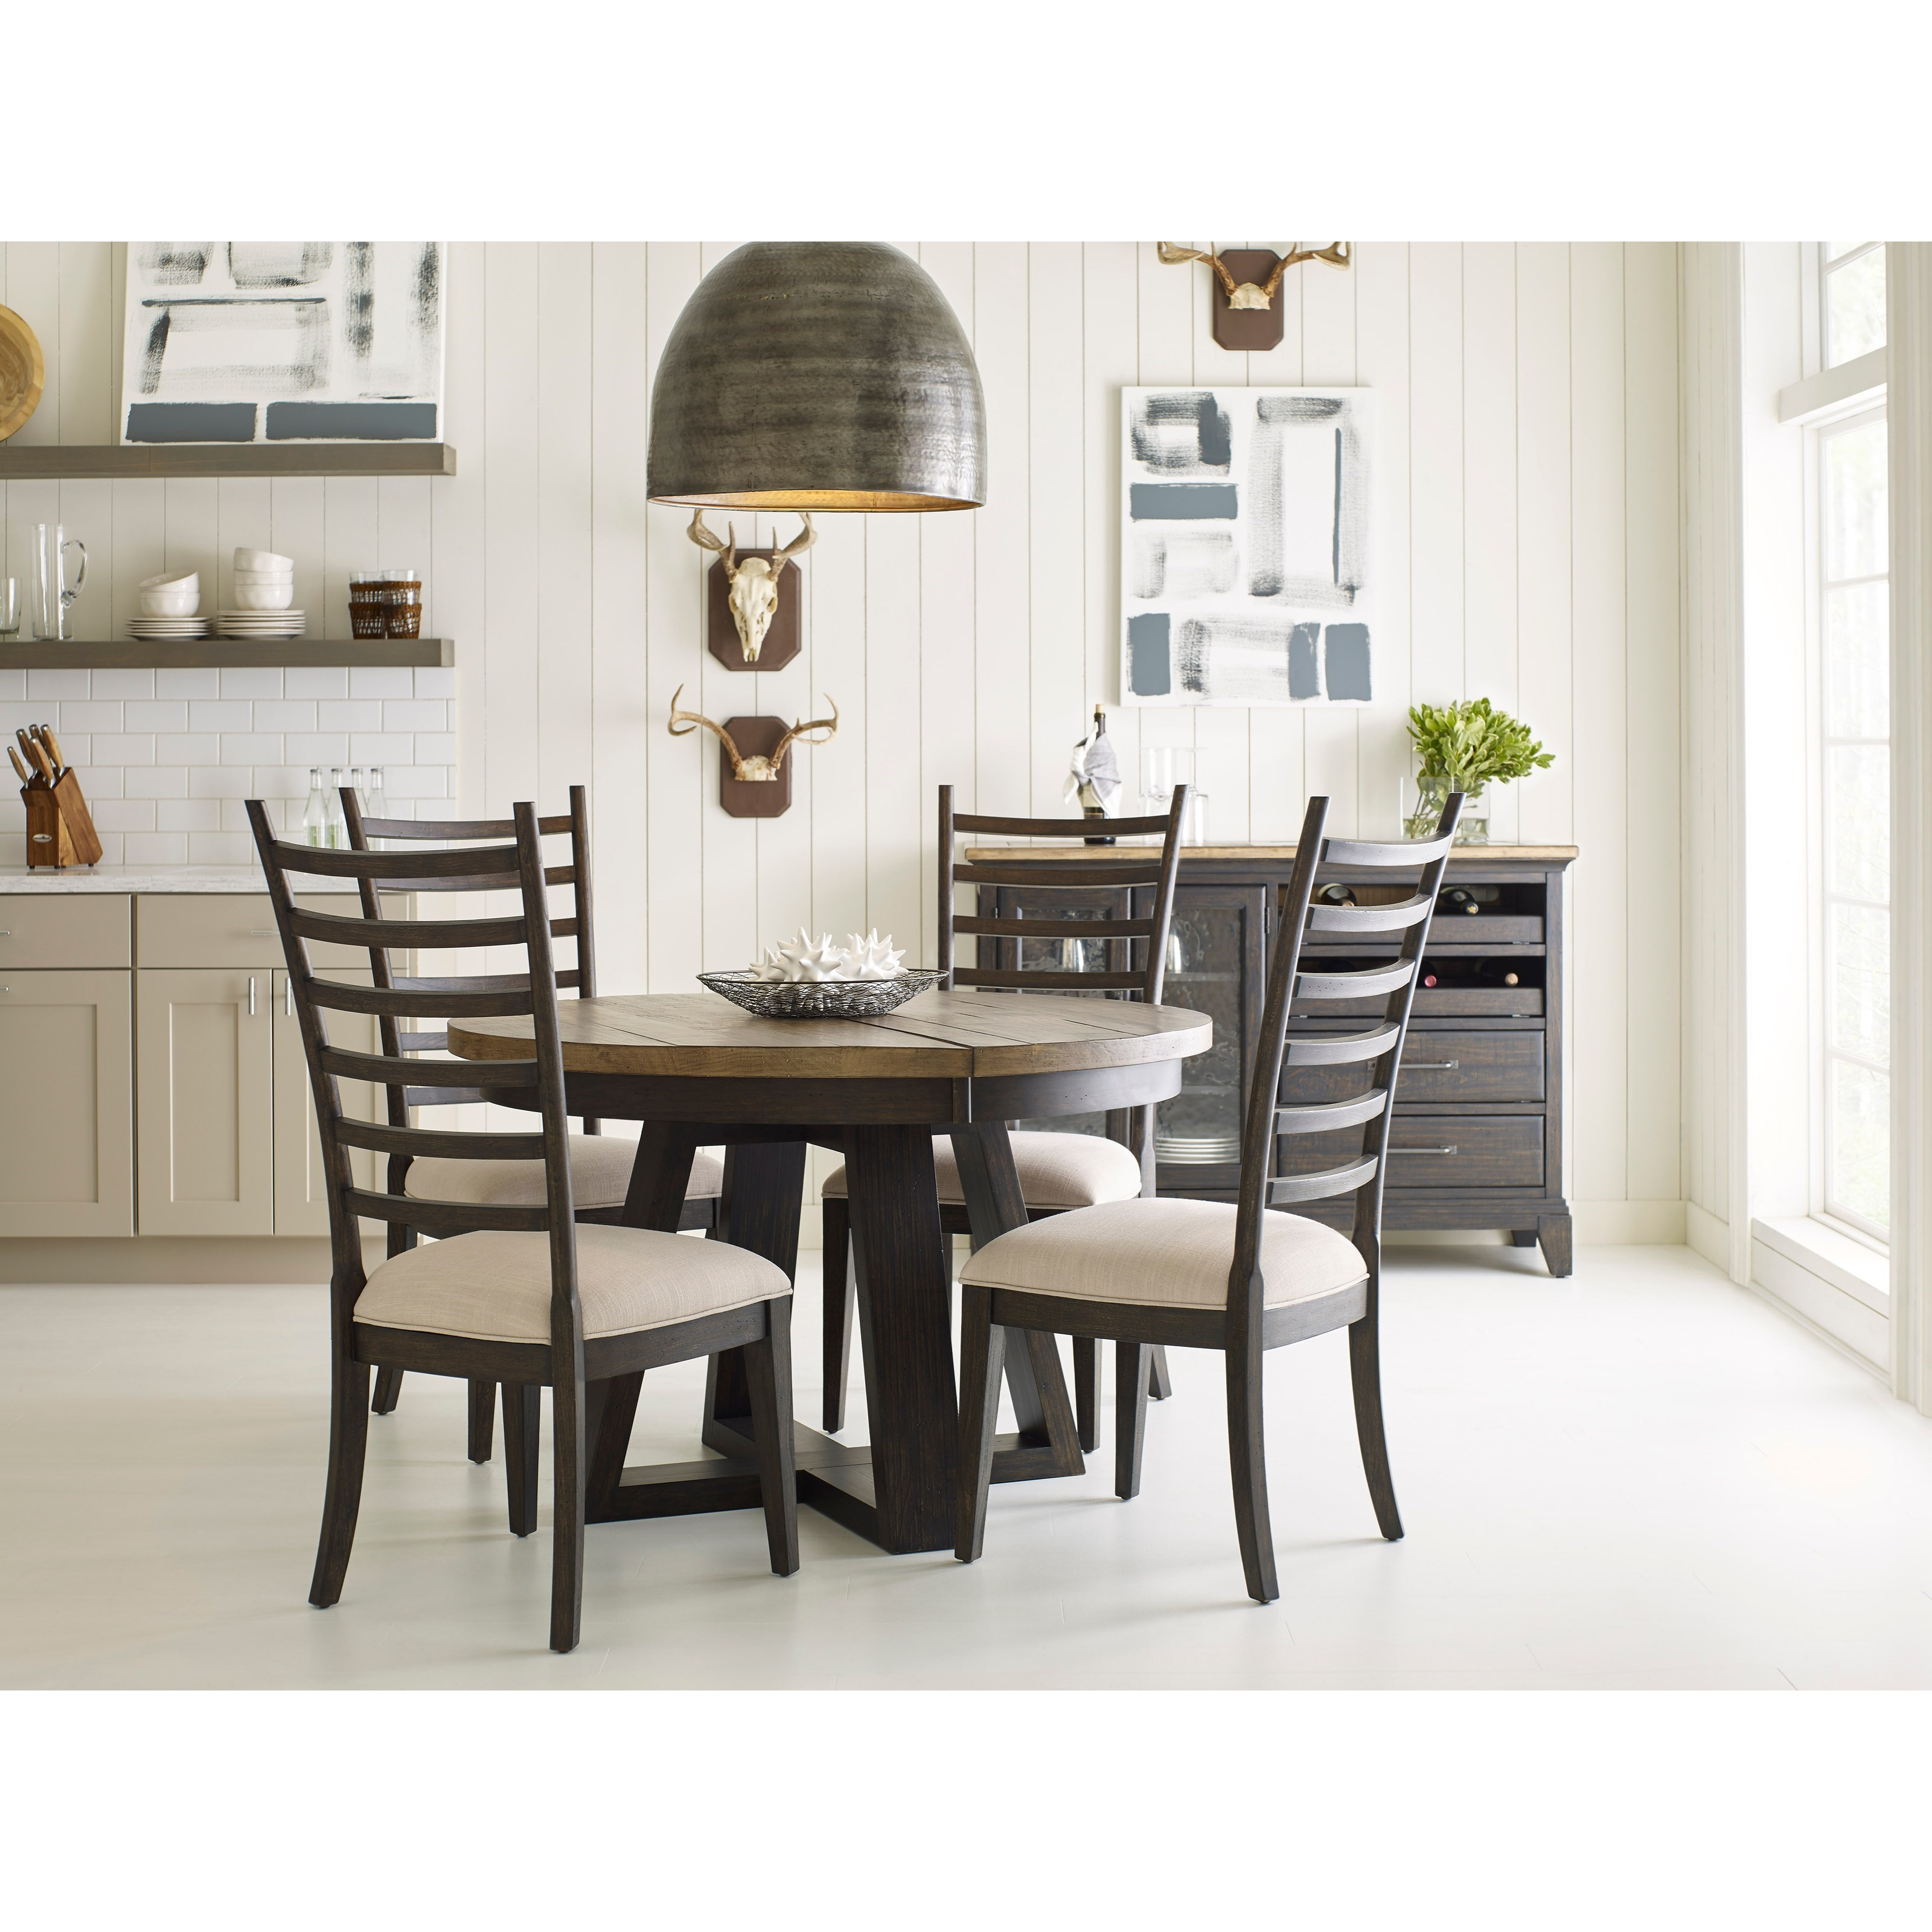 Kincaid furniture plank road casual dining room group for Casual dining room furniture